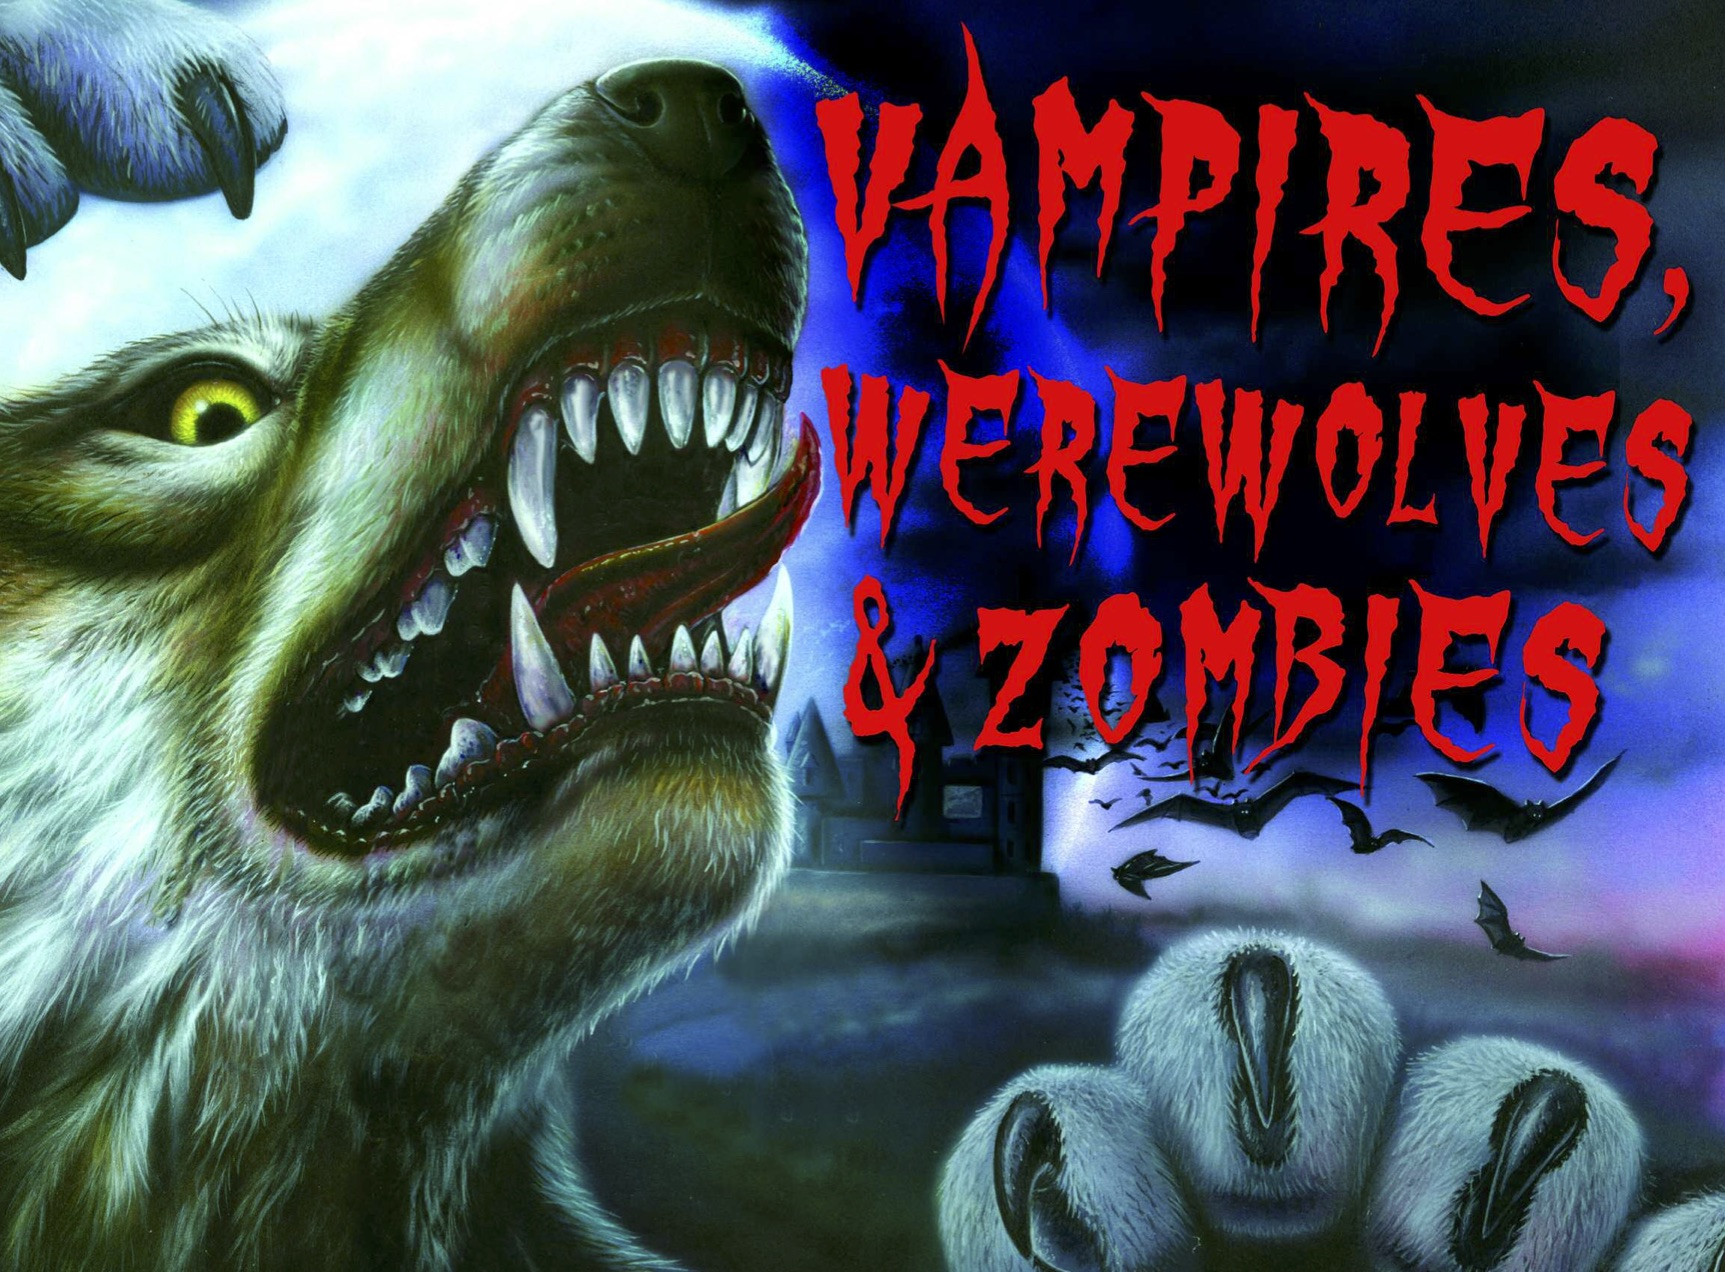 Vampires, Werewolves & Zombies